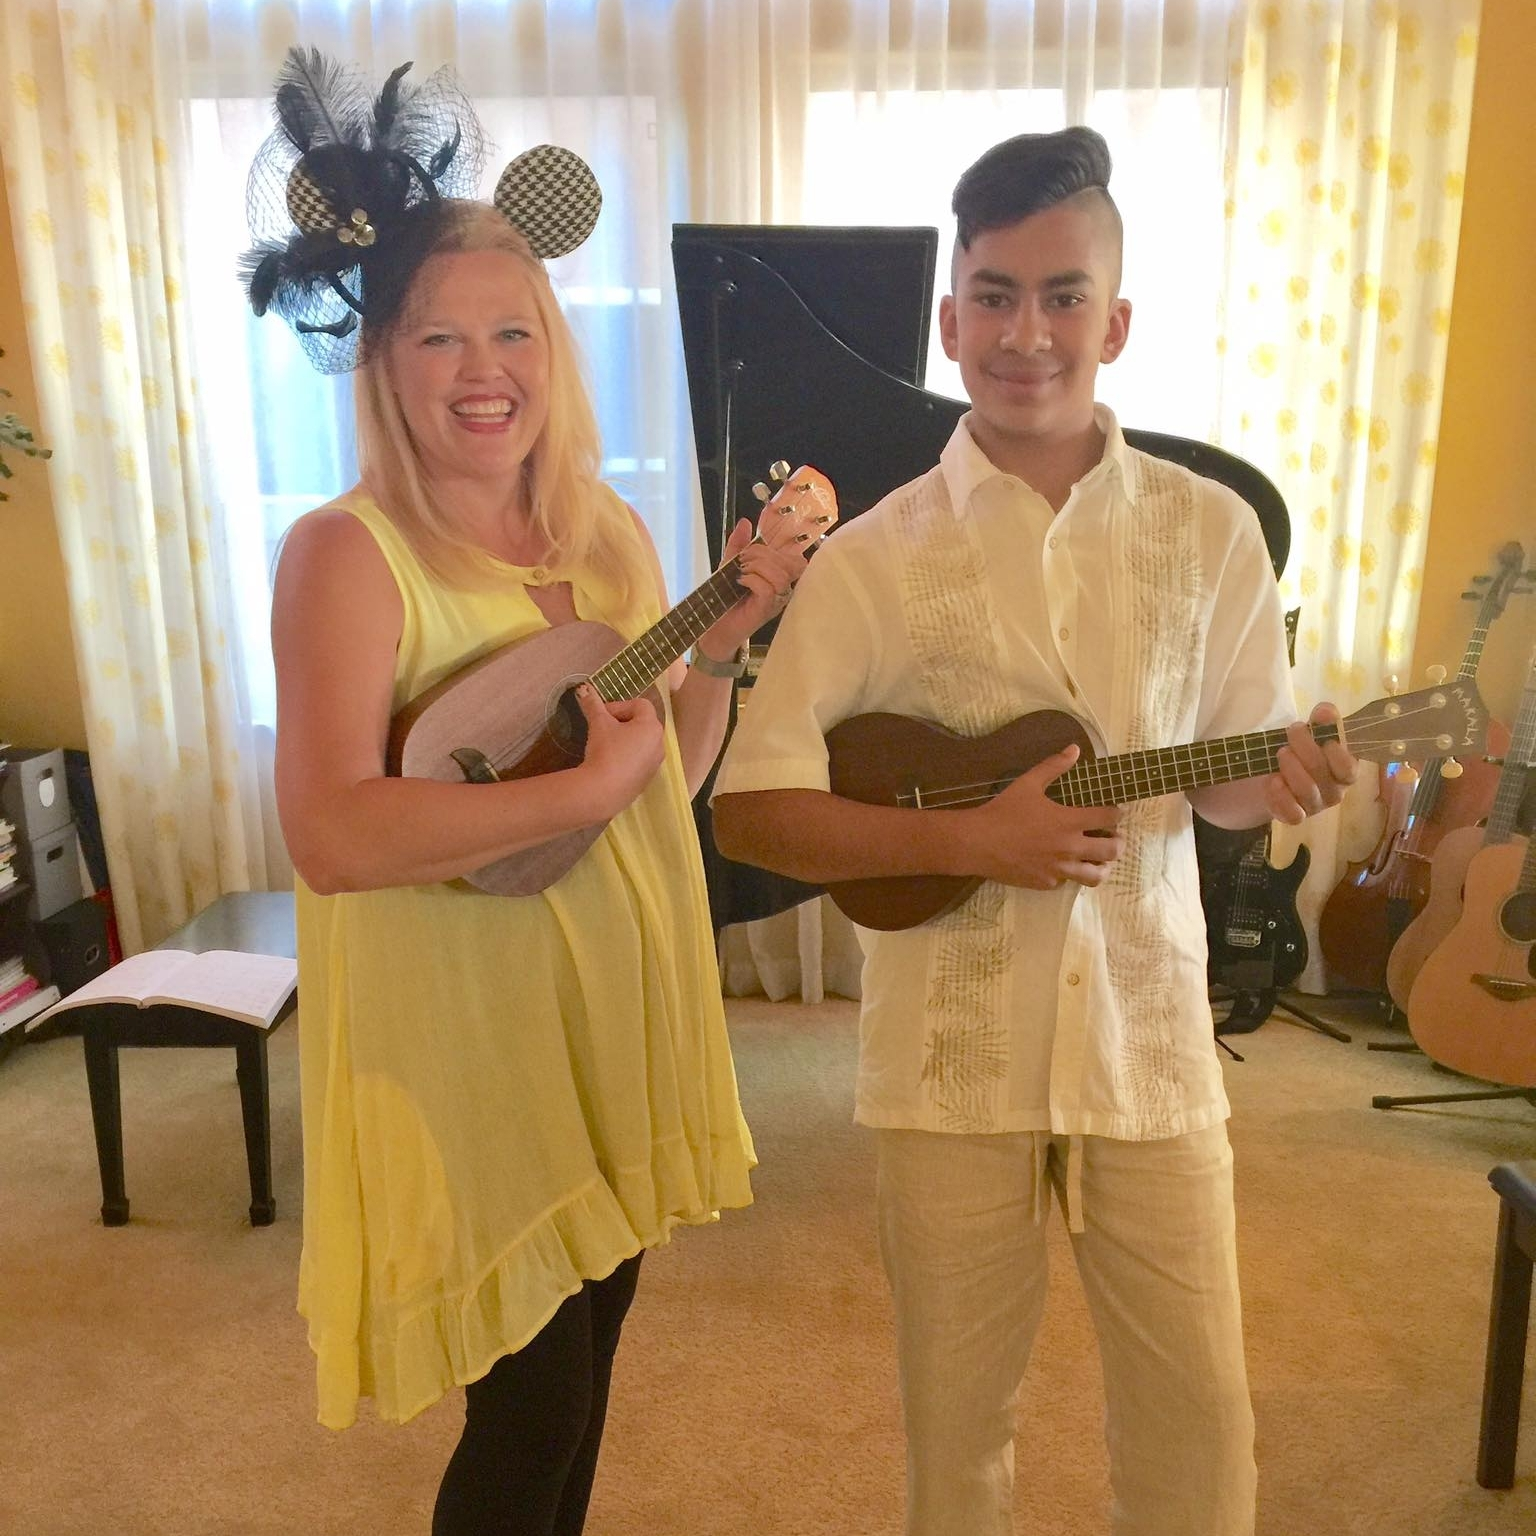 gallery-ukulele-music-duet-disney-showcase-student-highlight-fall-2017.jpg